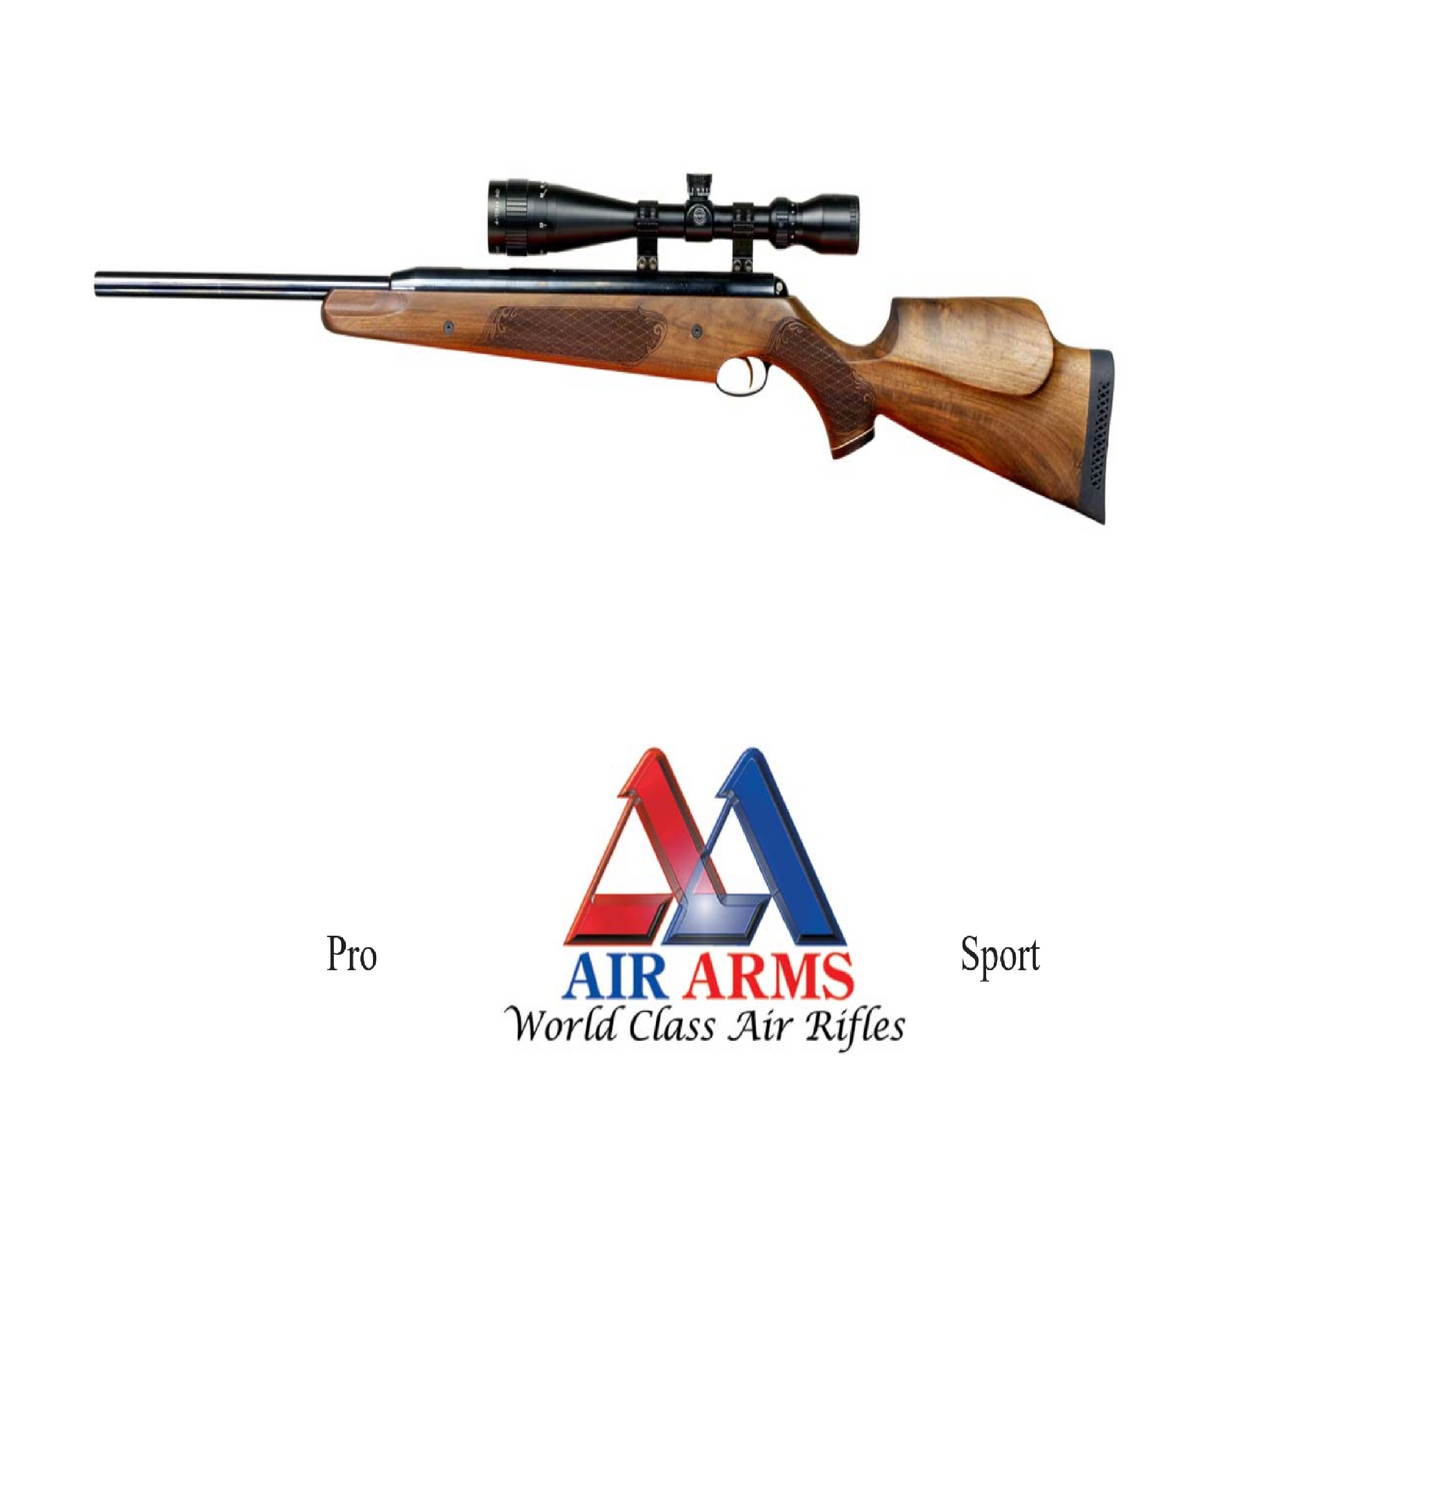 Air Arms Pro Sport  Airgun Air Rifle Gun Exploded Parts Tear Down Diagram Download #AirArms